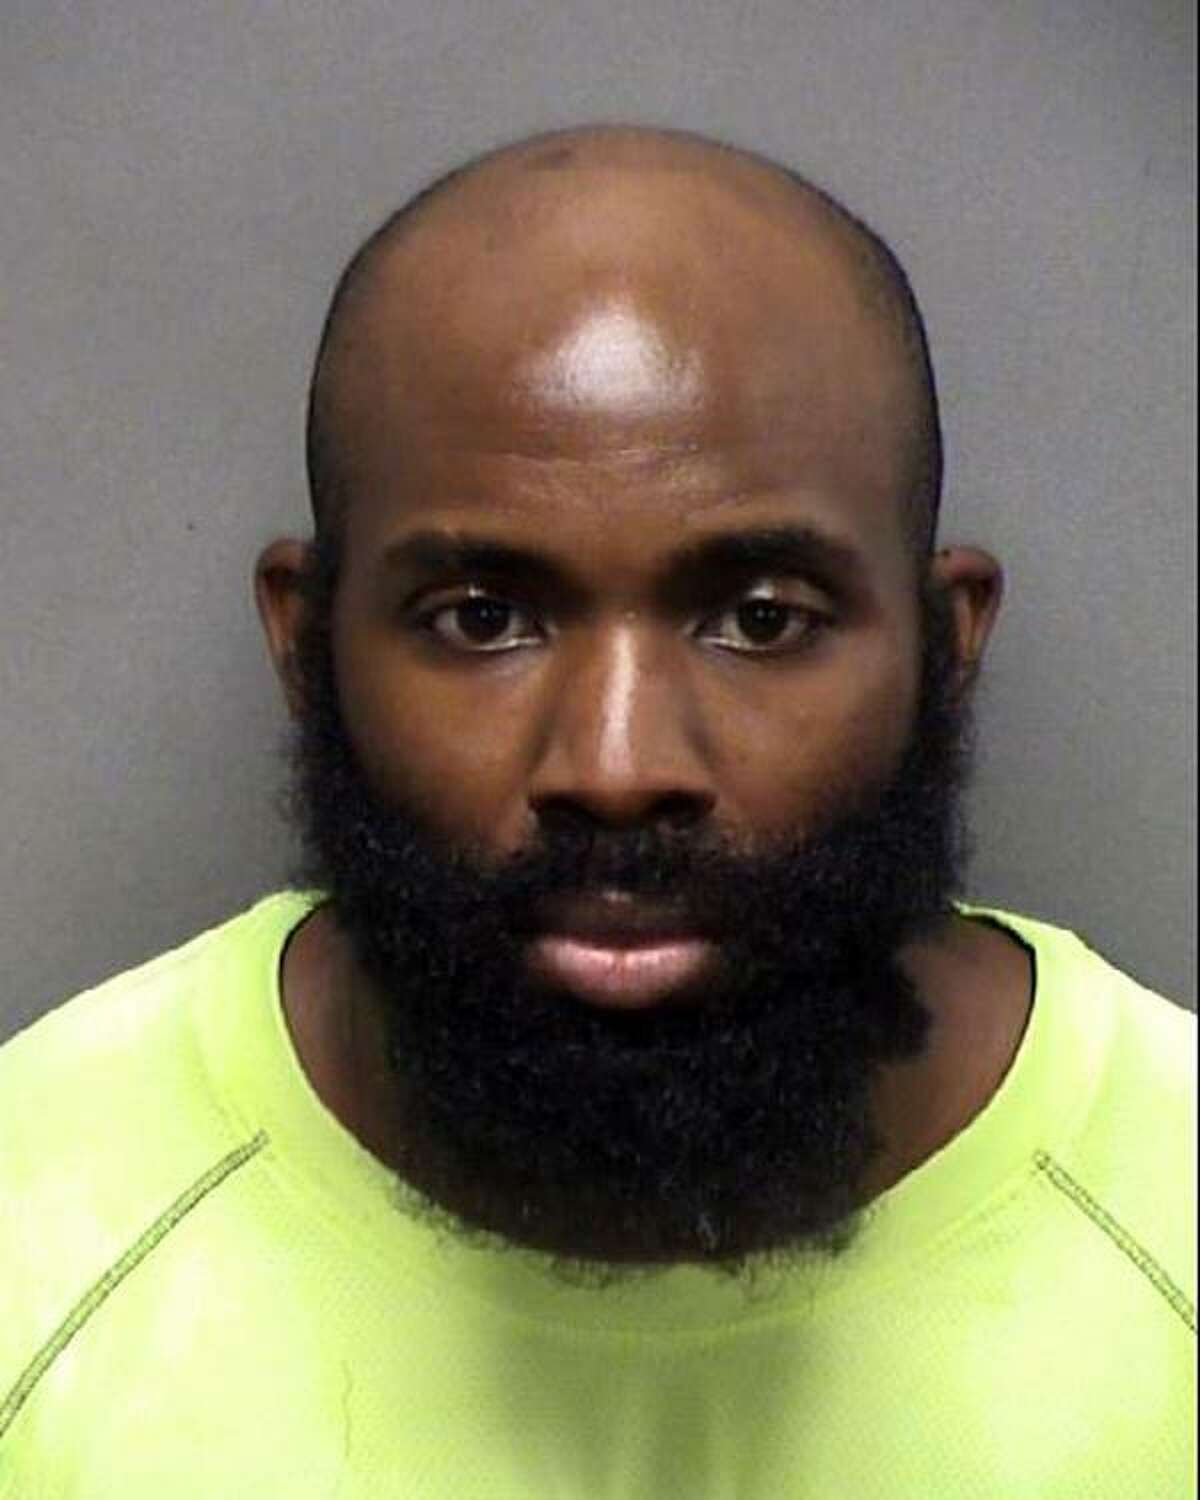 Mathias Ometu, 33, was stopped by San Antonio police officers who said he matched the description of a man suspected of domestic violence on Aug. 25, 2020. The officers had the wrong man. Now, Ometu faces two felony charges of assaulting a police officer.